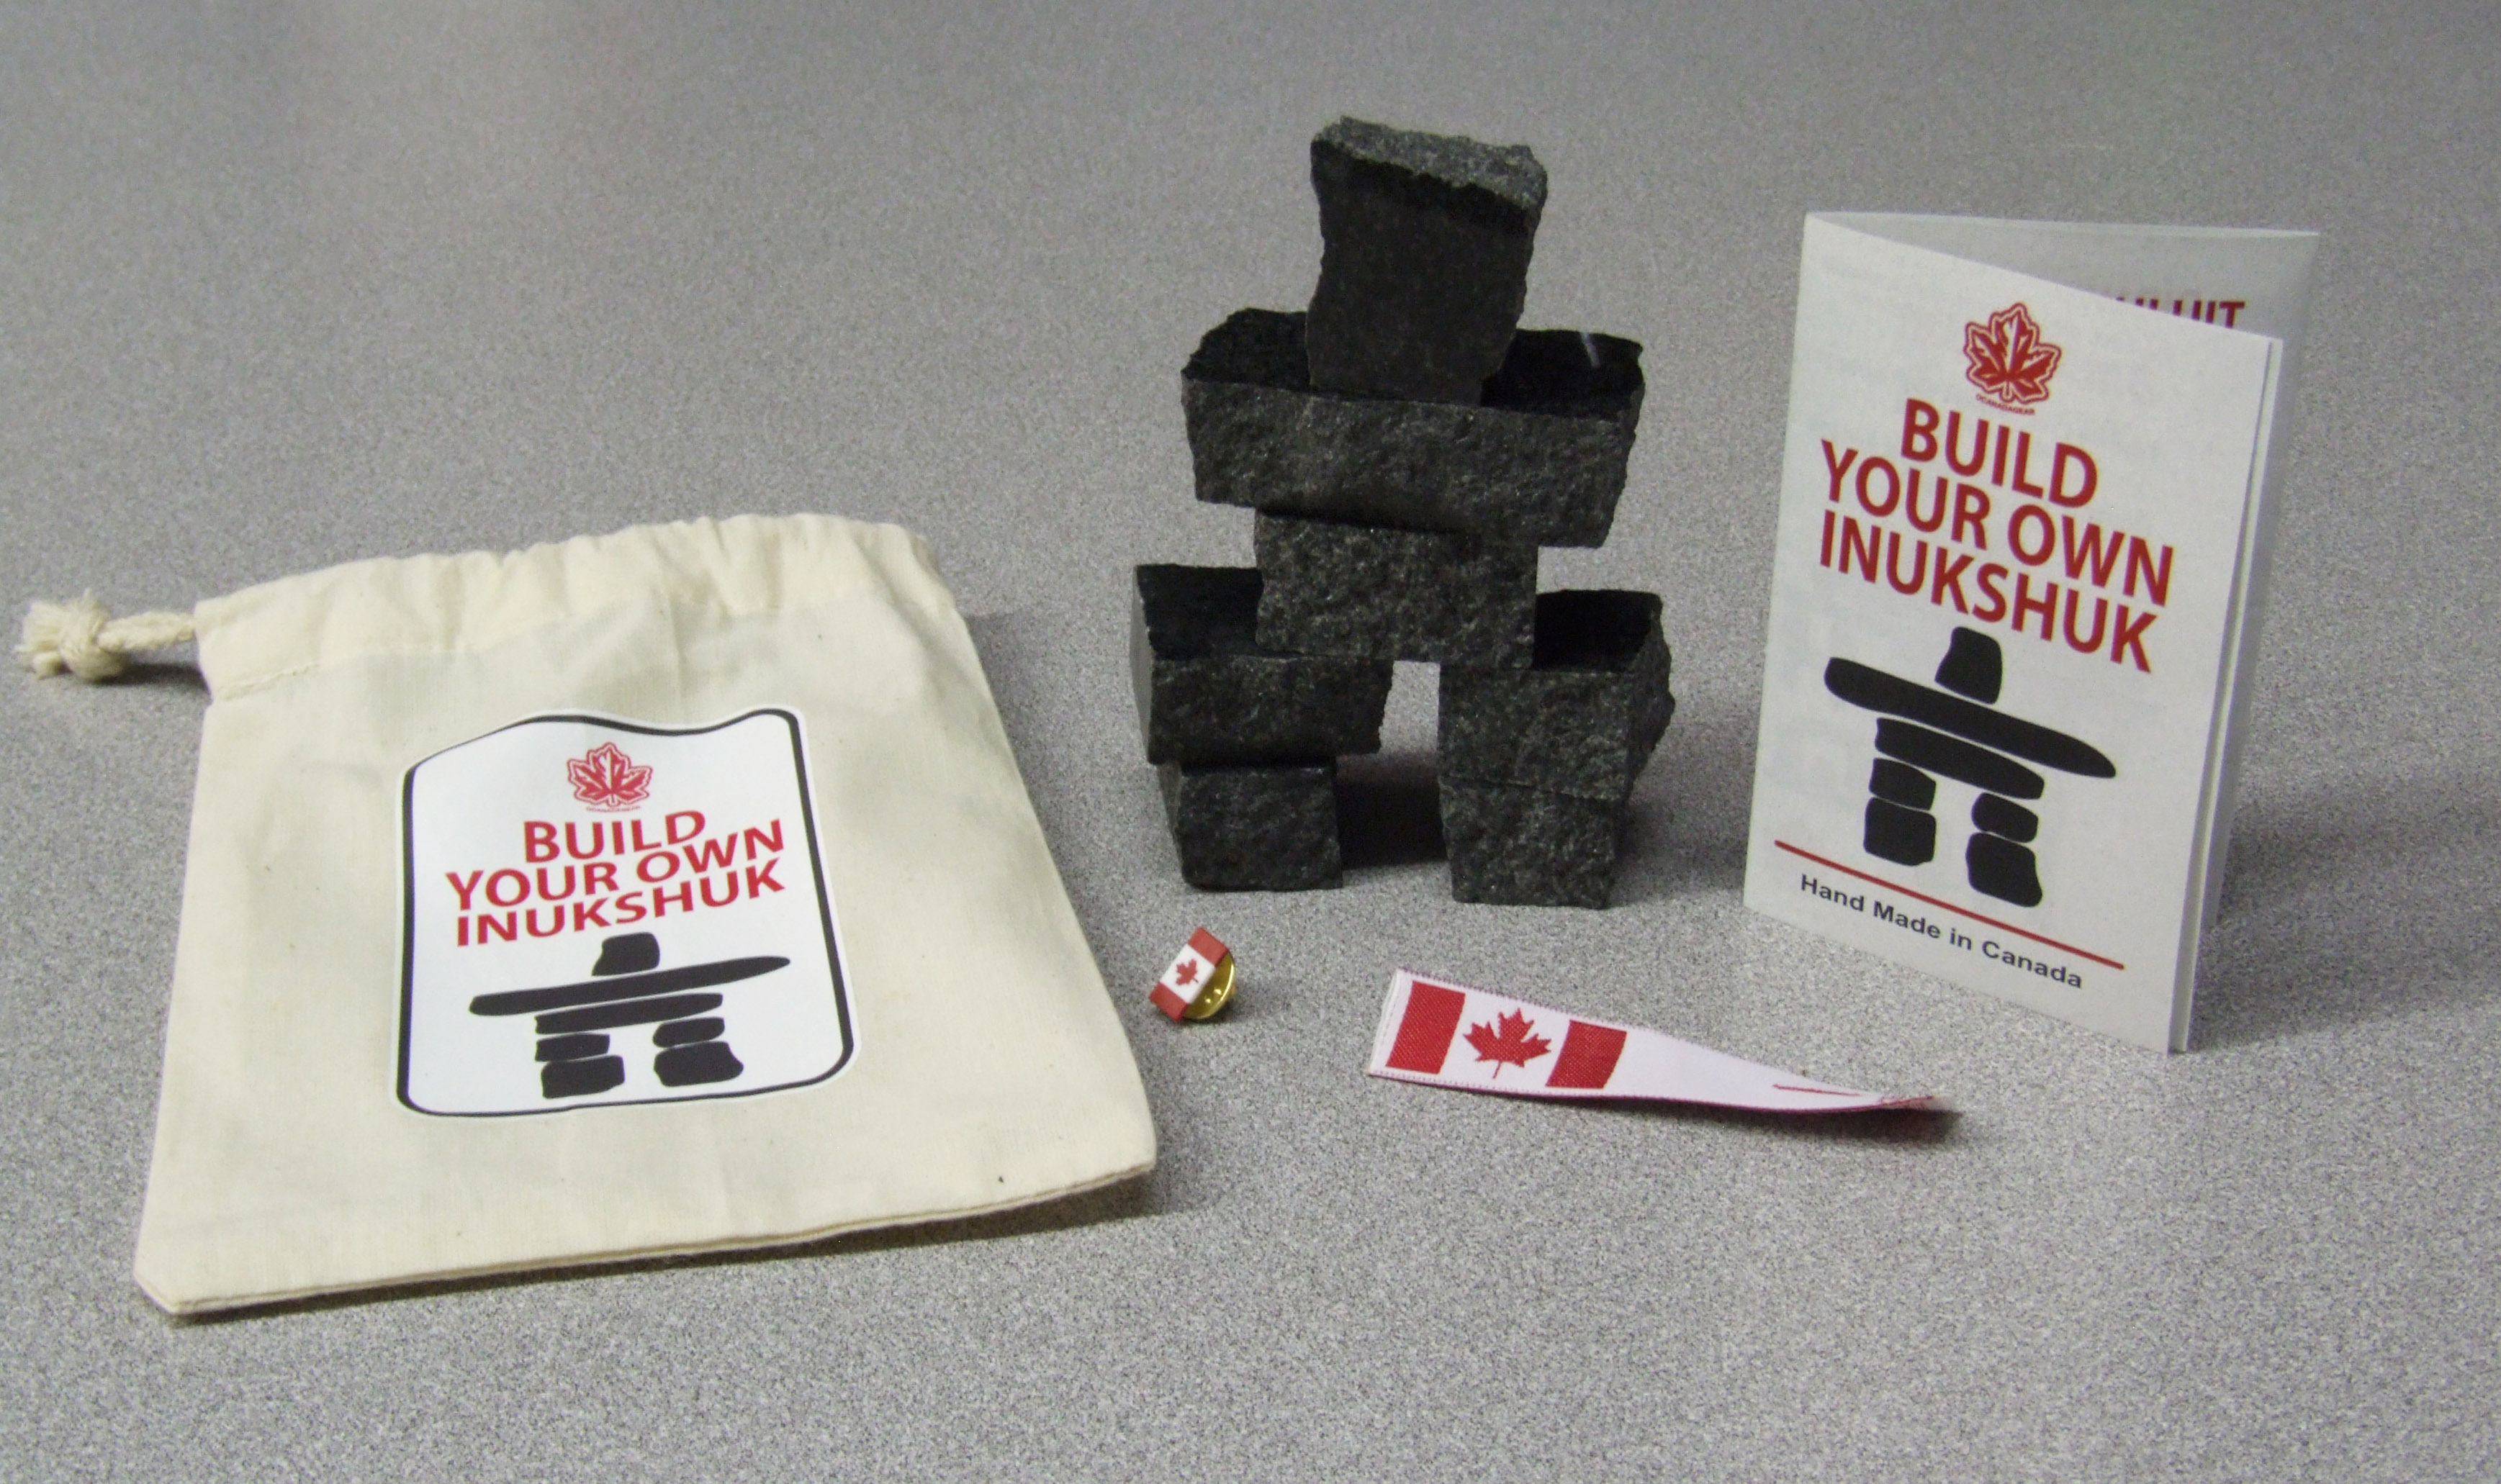 Build your own Canada Inukshuk